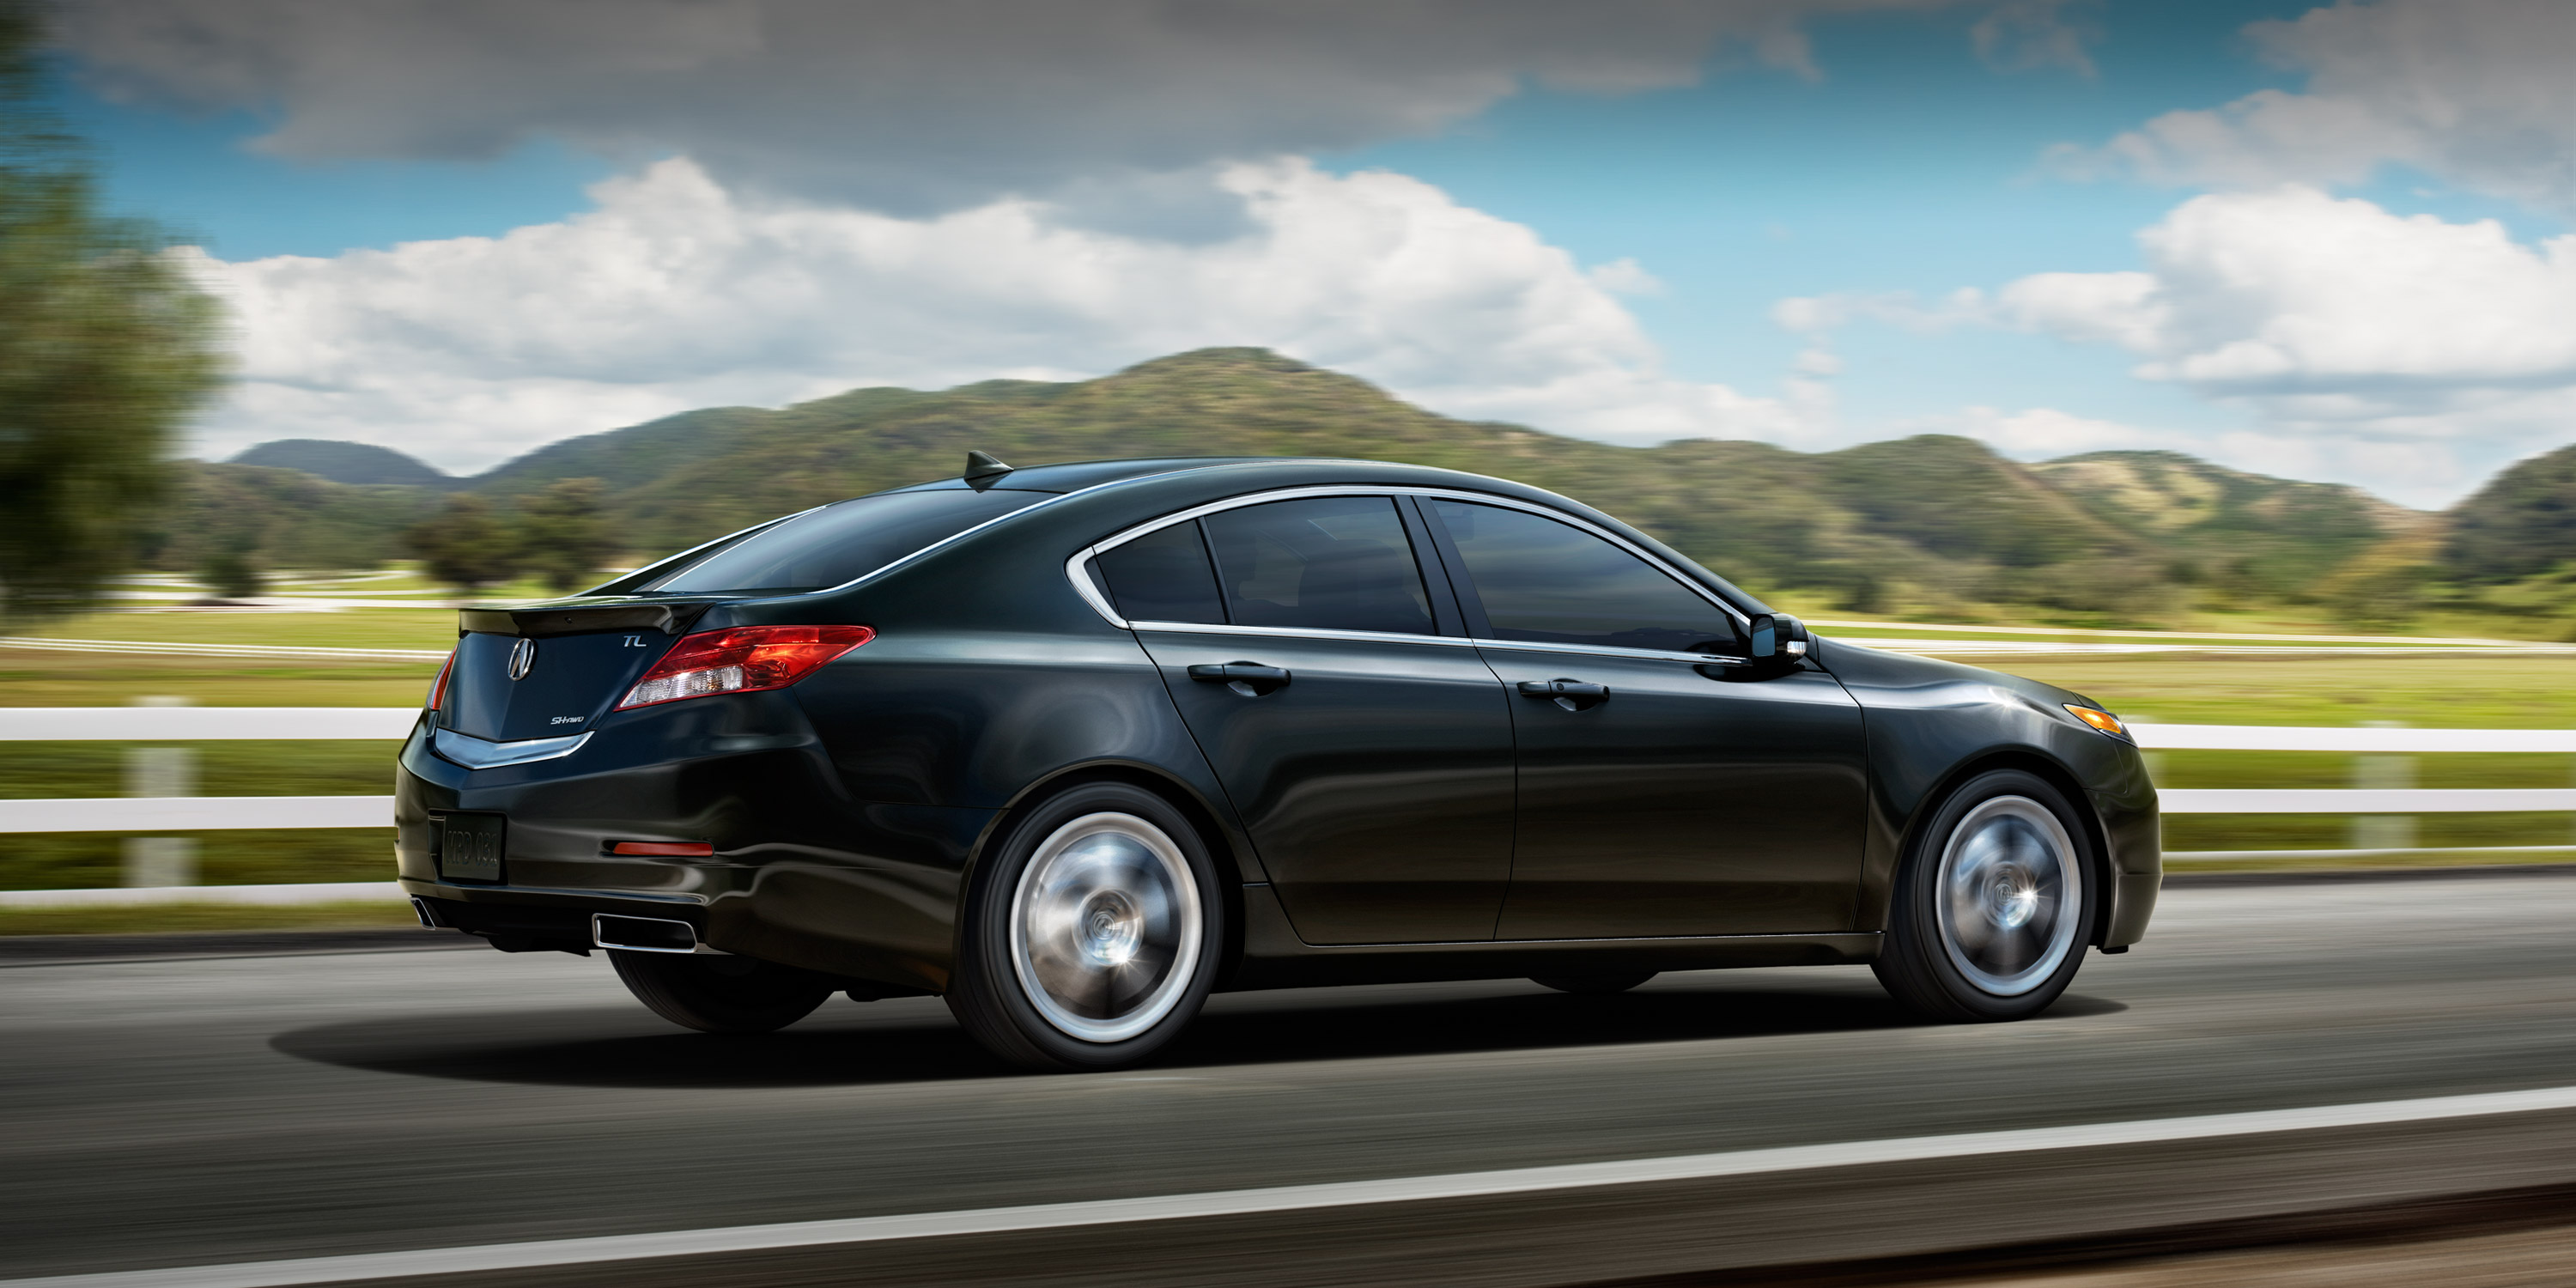 Drive 4 Ur School >> 2014 Acura TL Now on Sale | Butler Auto Group's Blog